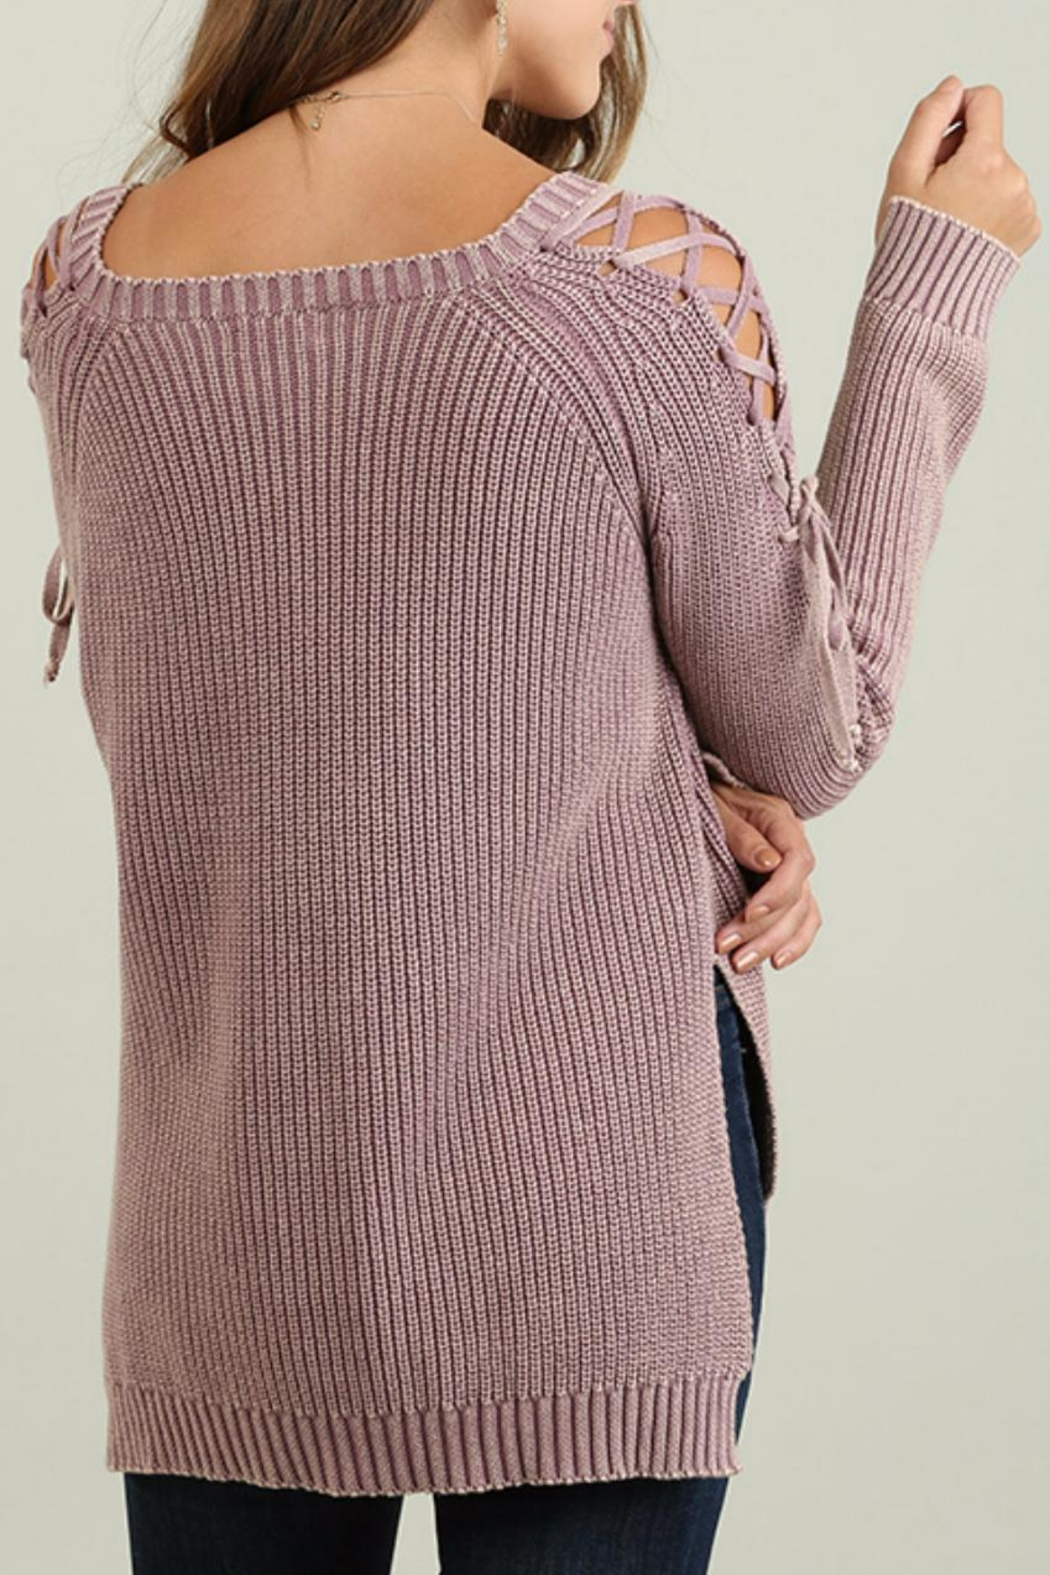 Umgee USA Mineral Washed Sweater - Side Cropped Image